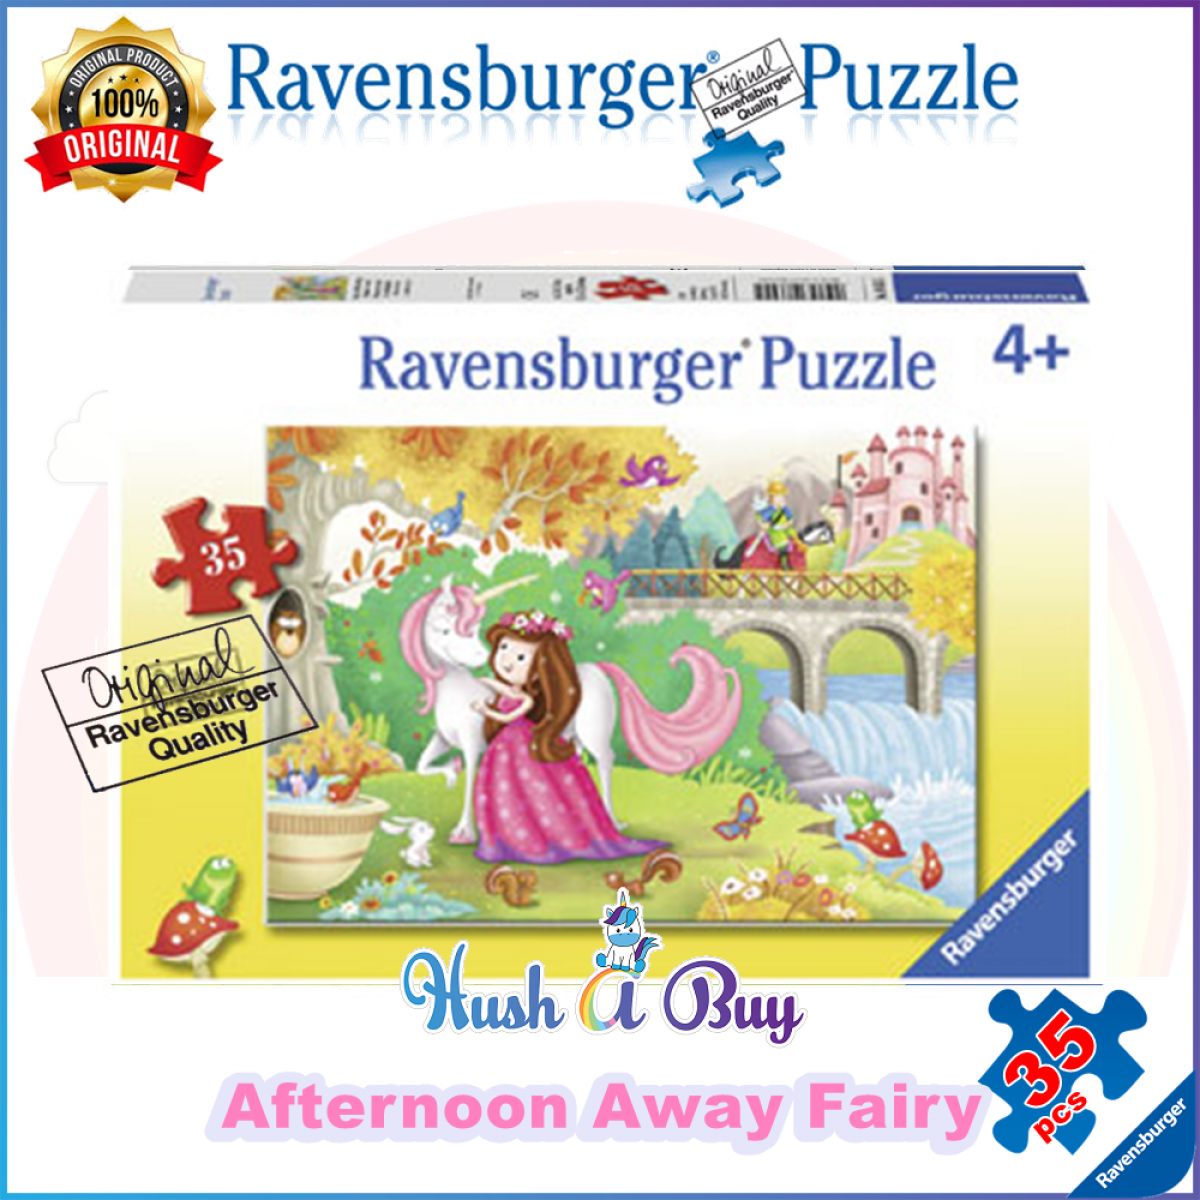 Ravensburger Premium Puzzle 35pcs for 4+ Years (Authentic and Original)